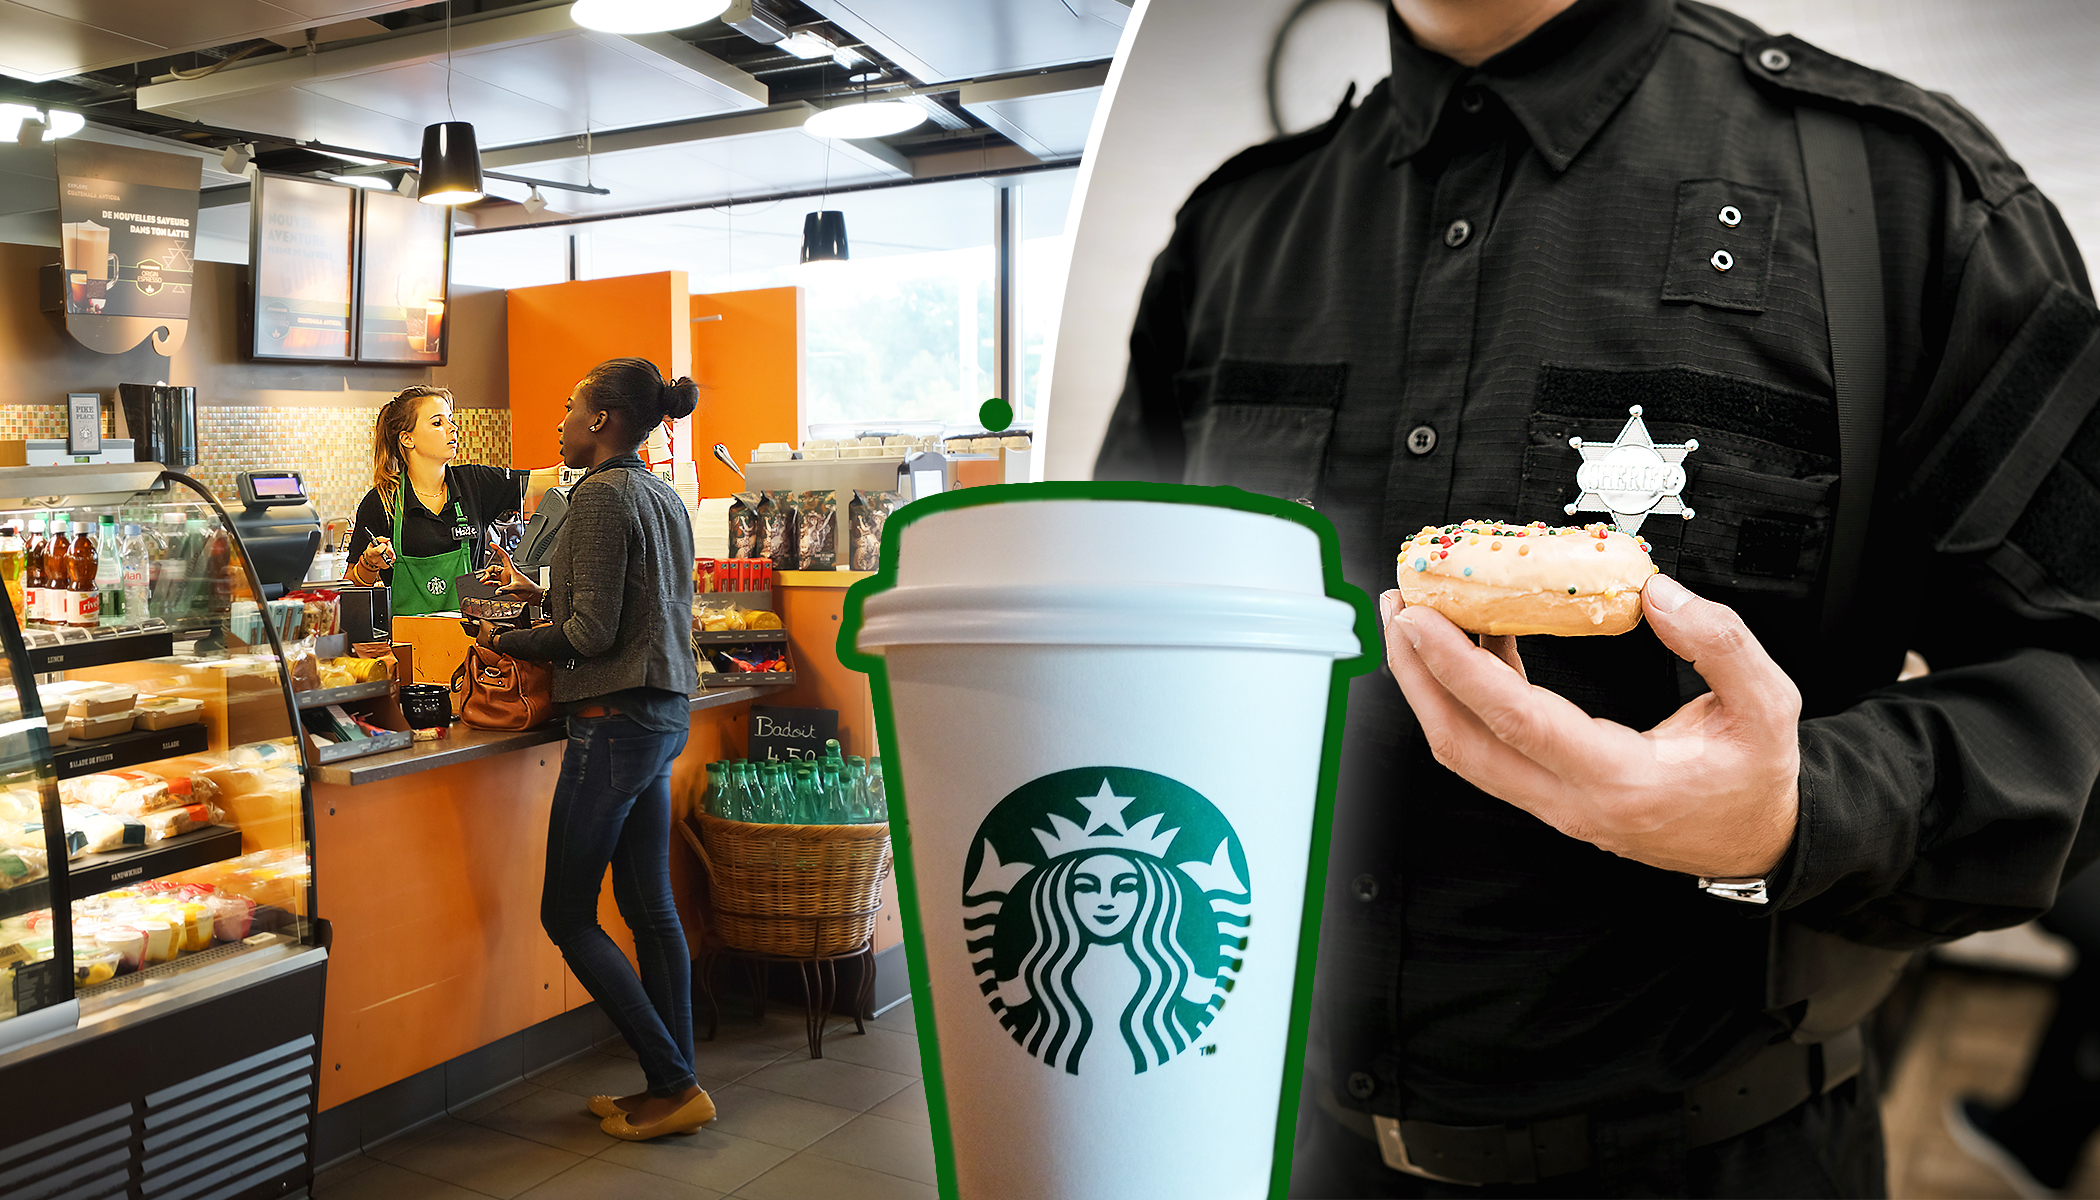 Starbucks Staff Asks Cops to Leave Because Customer Feels 'Unsafe'–Then Local Coffee Shop Makes Counter Offer